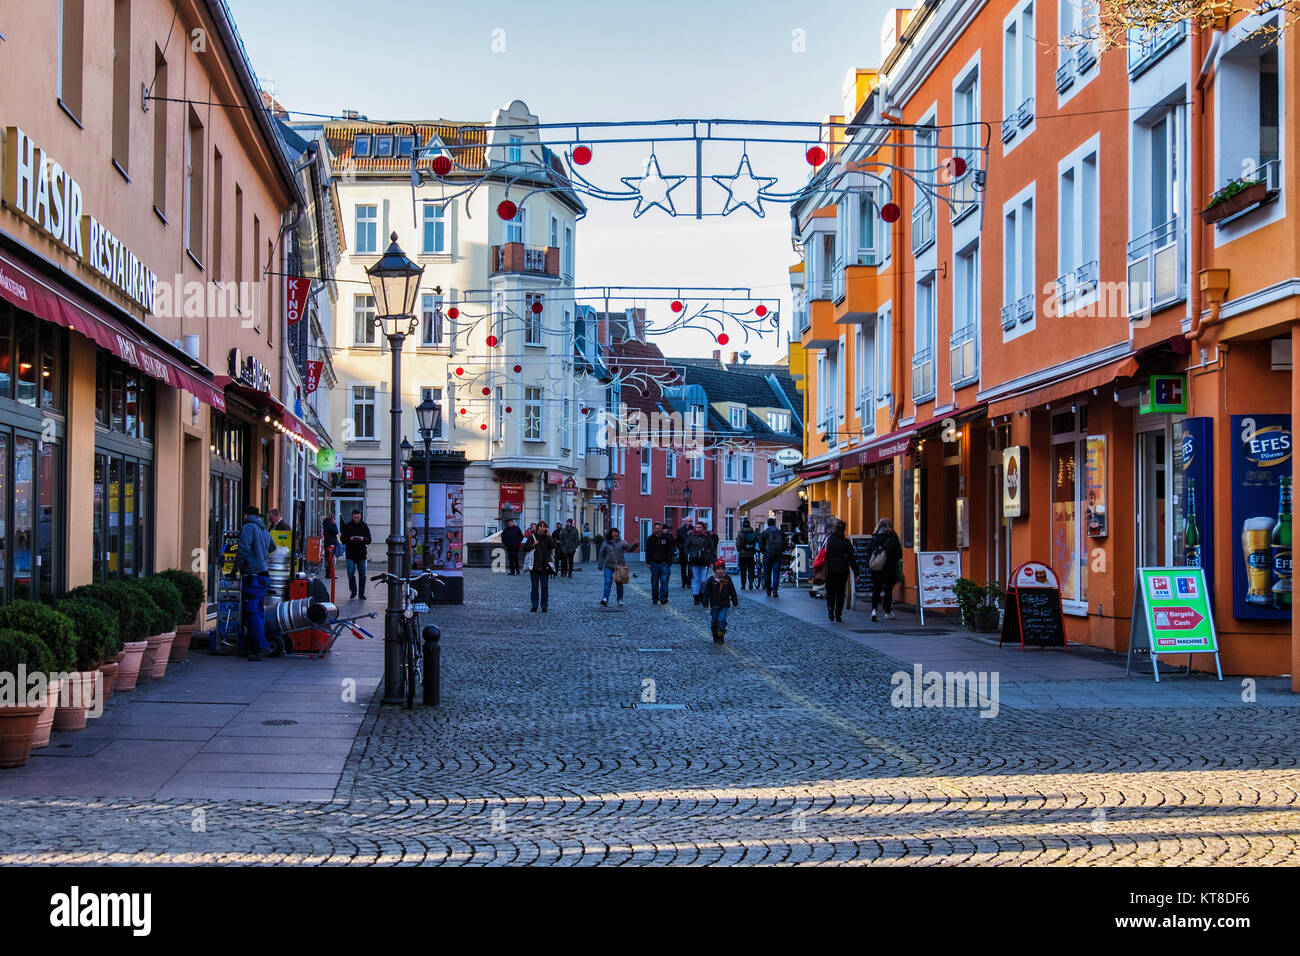 altstadt spandau stock photos altstadt spandau stock images alamy. Black Bedroom Furniture Sets. Home Design Ideas